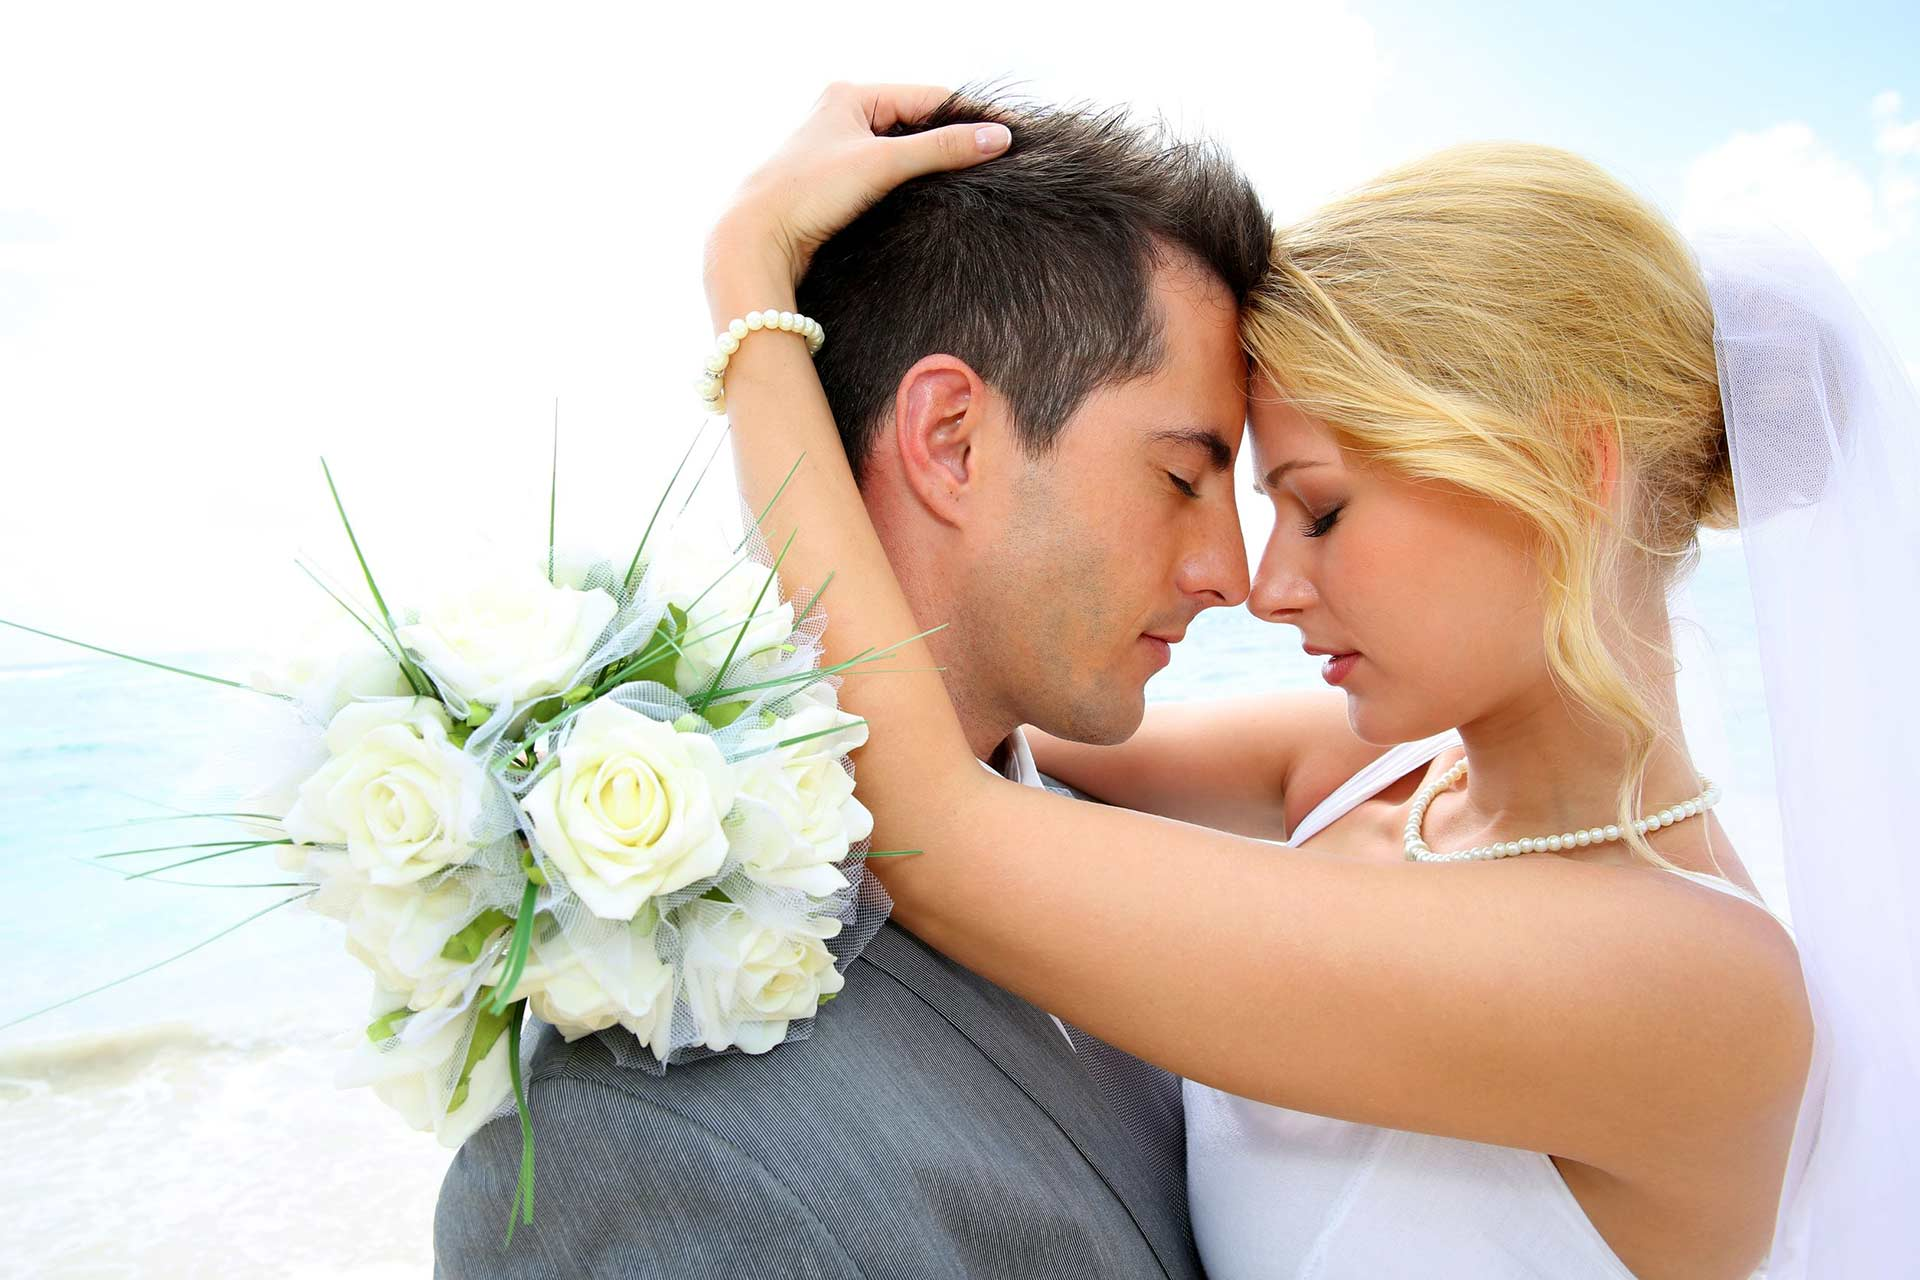 7 Must-Have Qualities to Look for in Your Future Husband